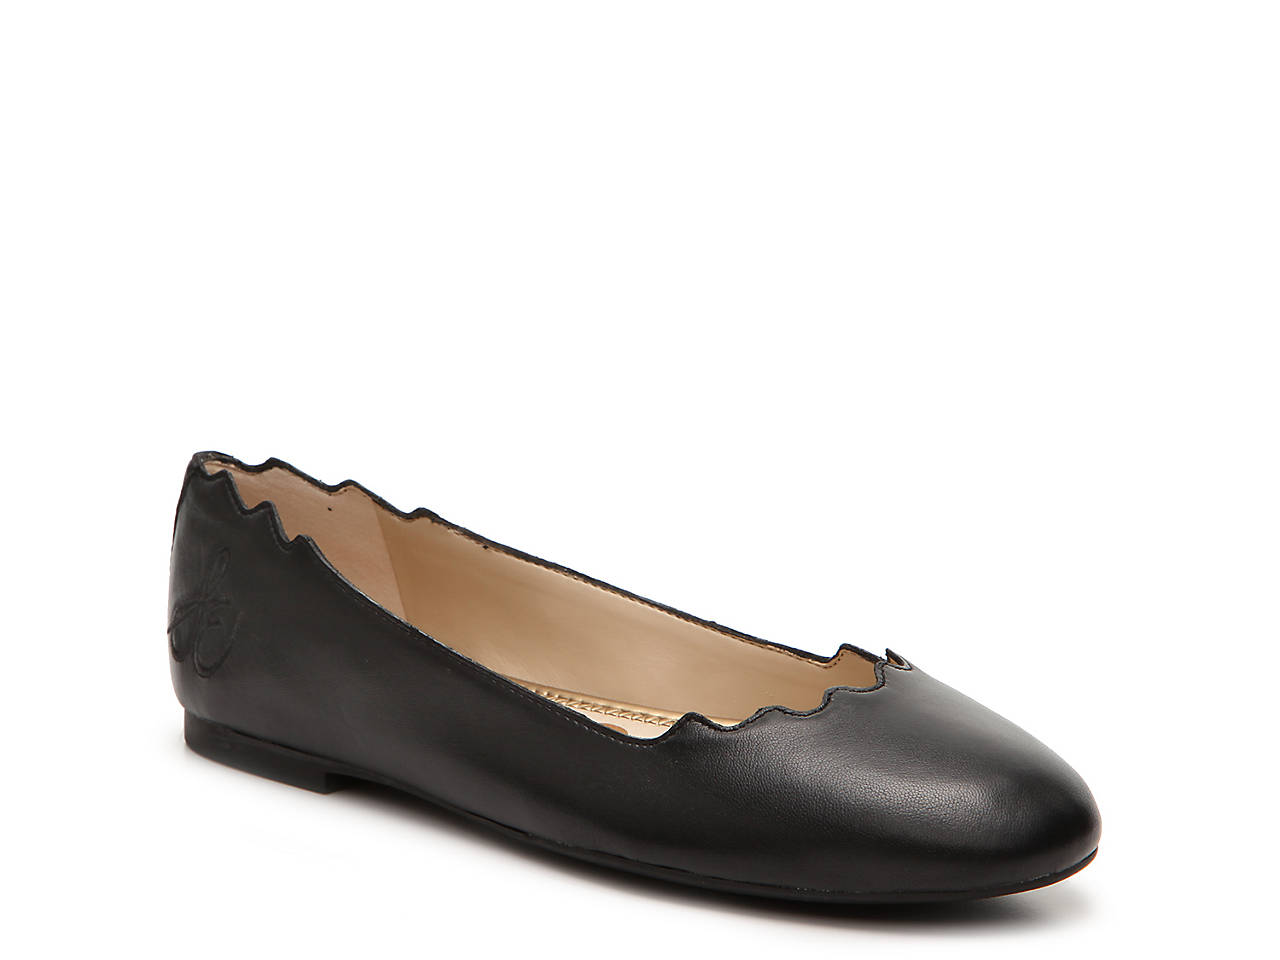 426d0f6d0 Sam Edelman Finnegan Ballet Flat Women s Shoes